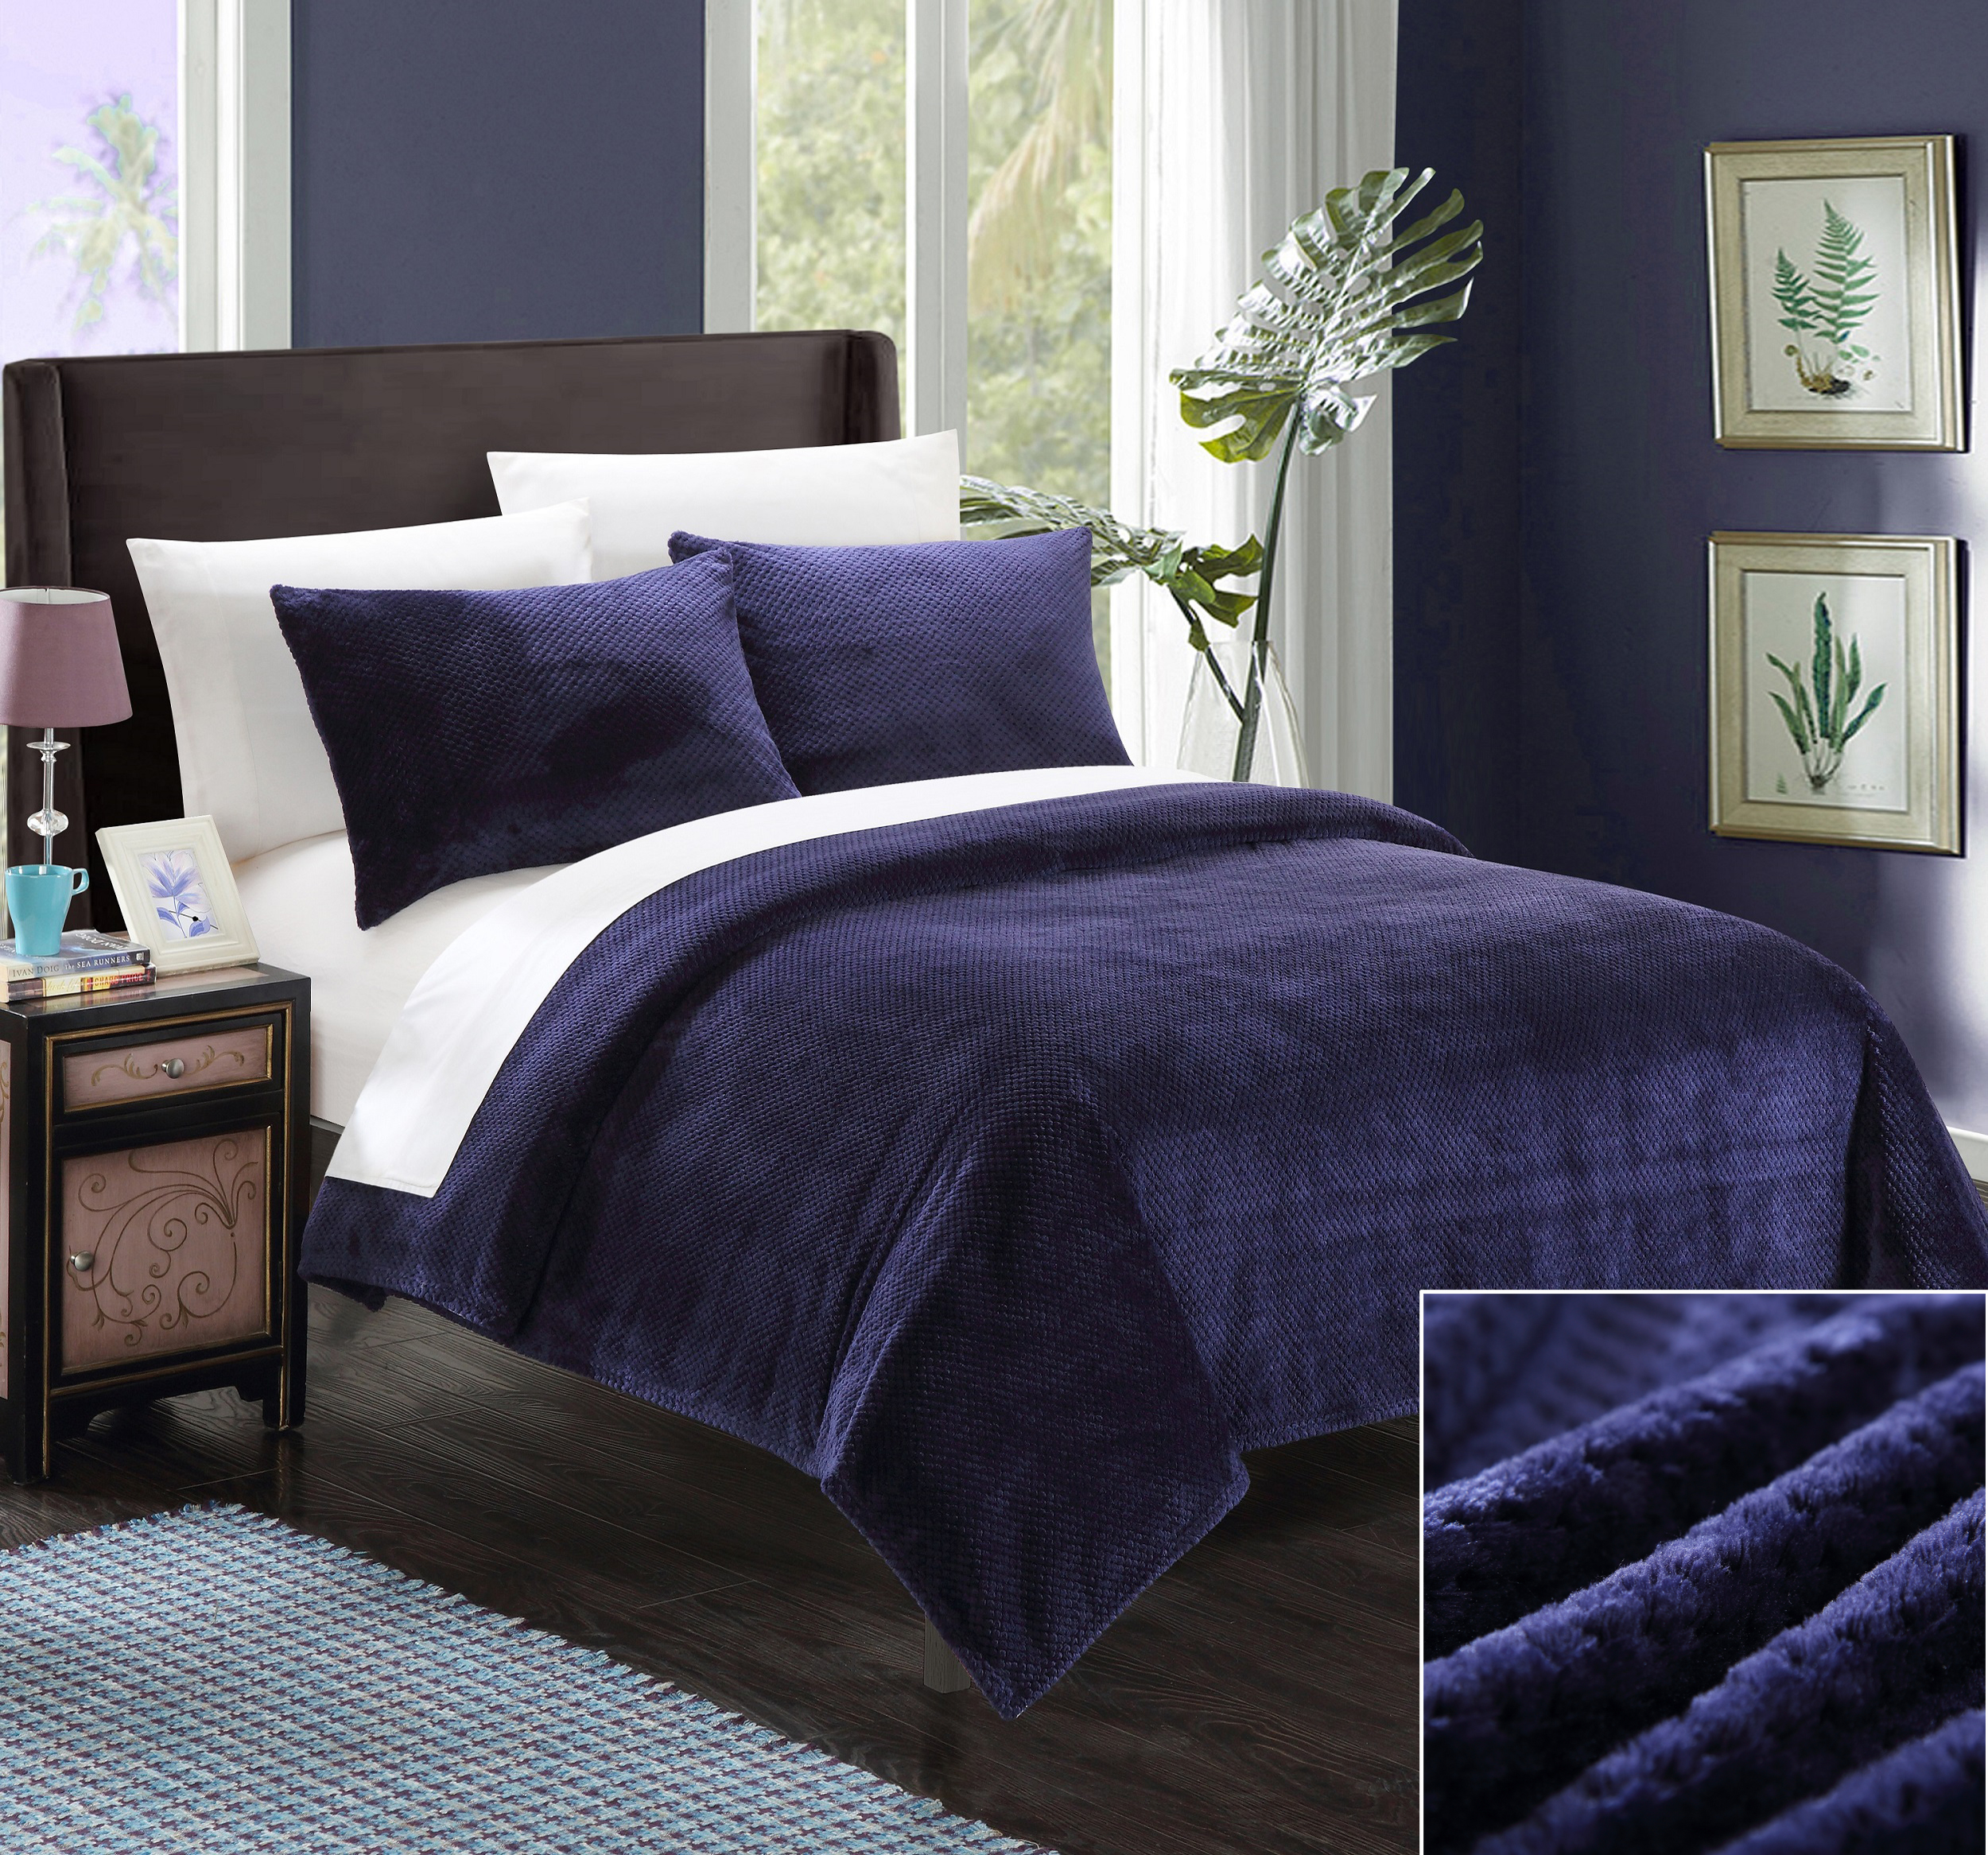 Chic Home 3-Piece Marrakesh King, Navy